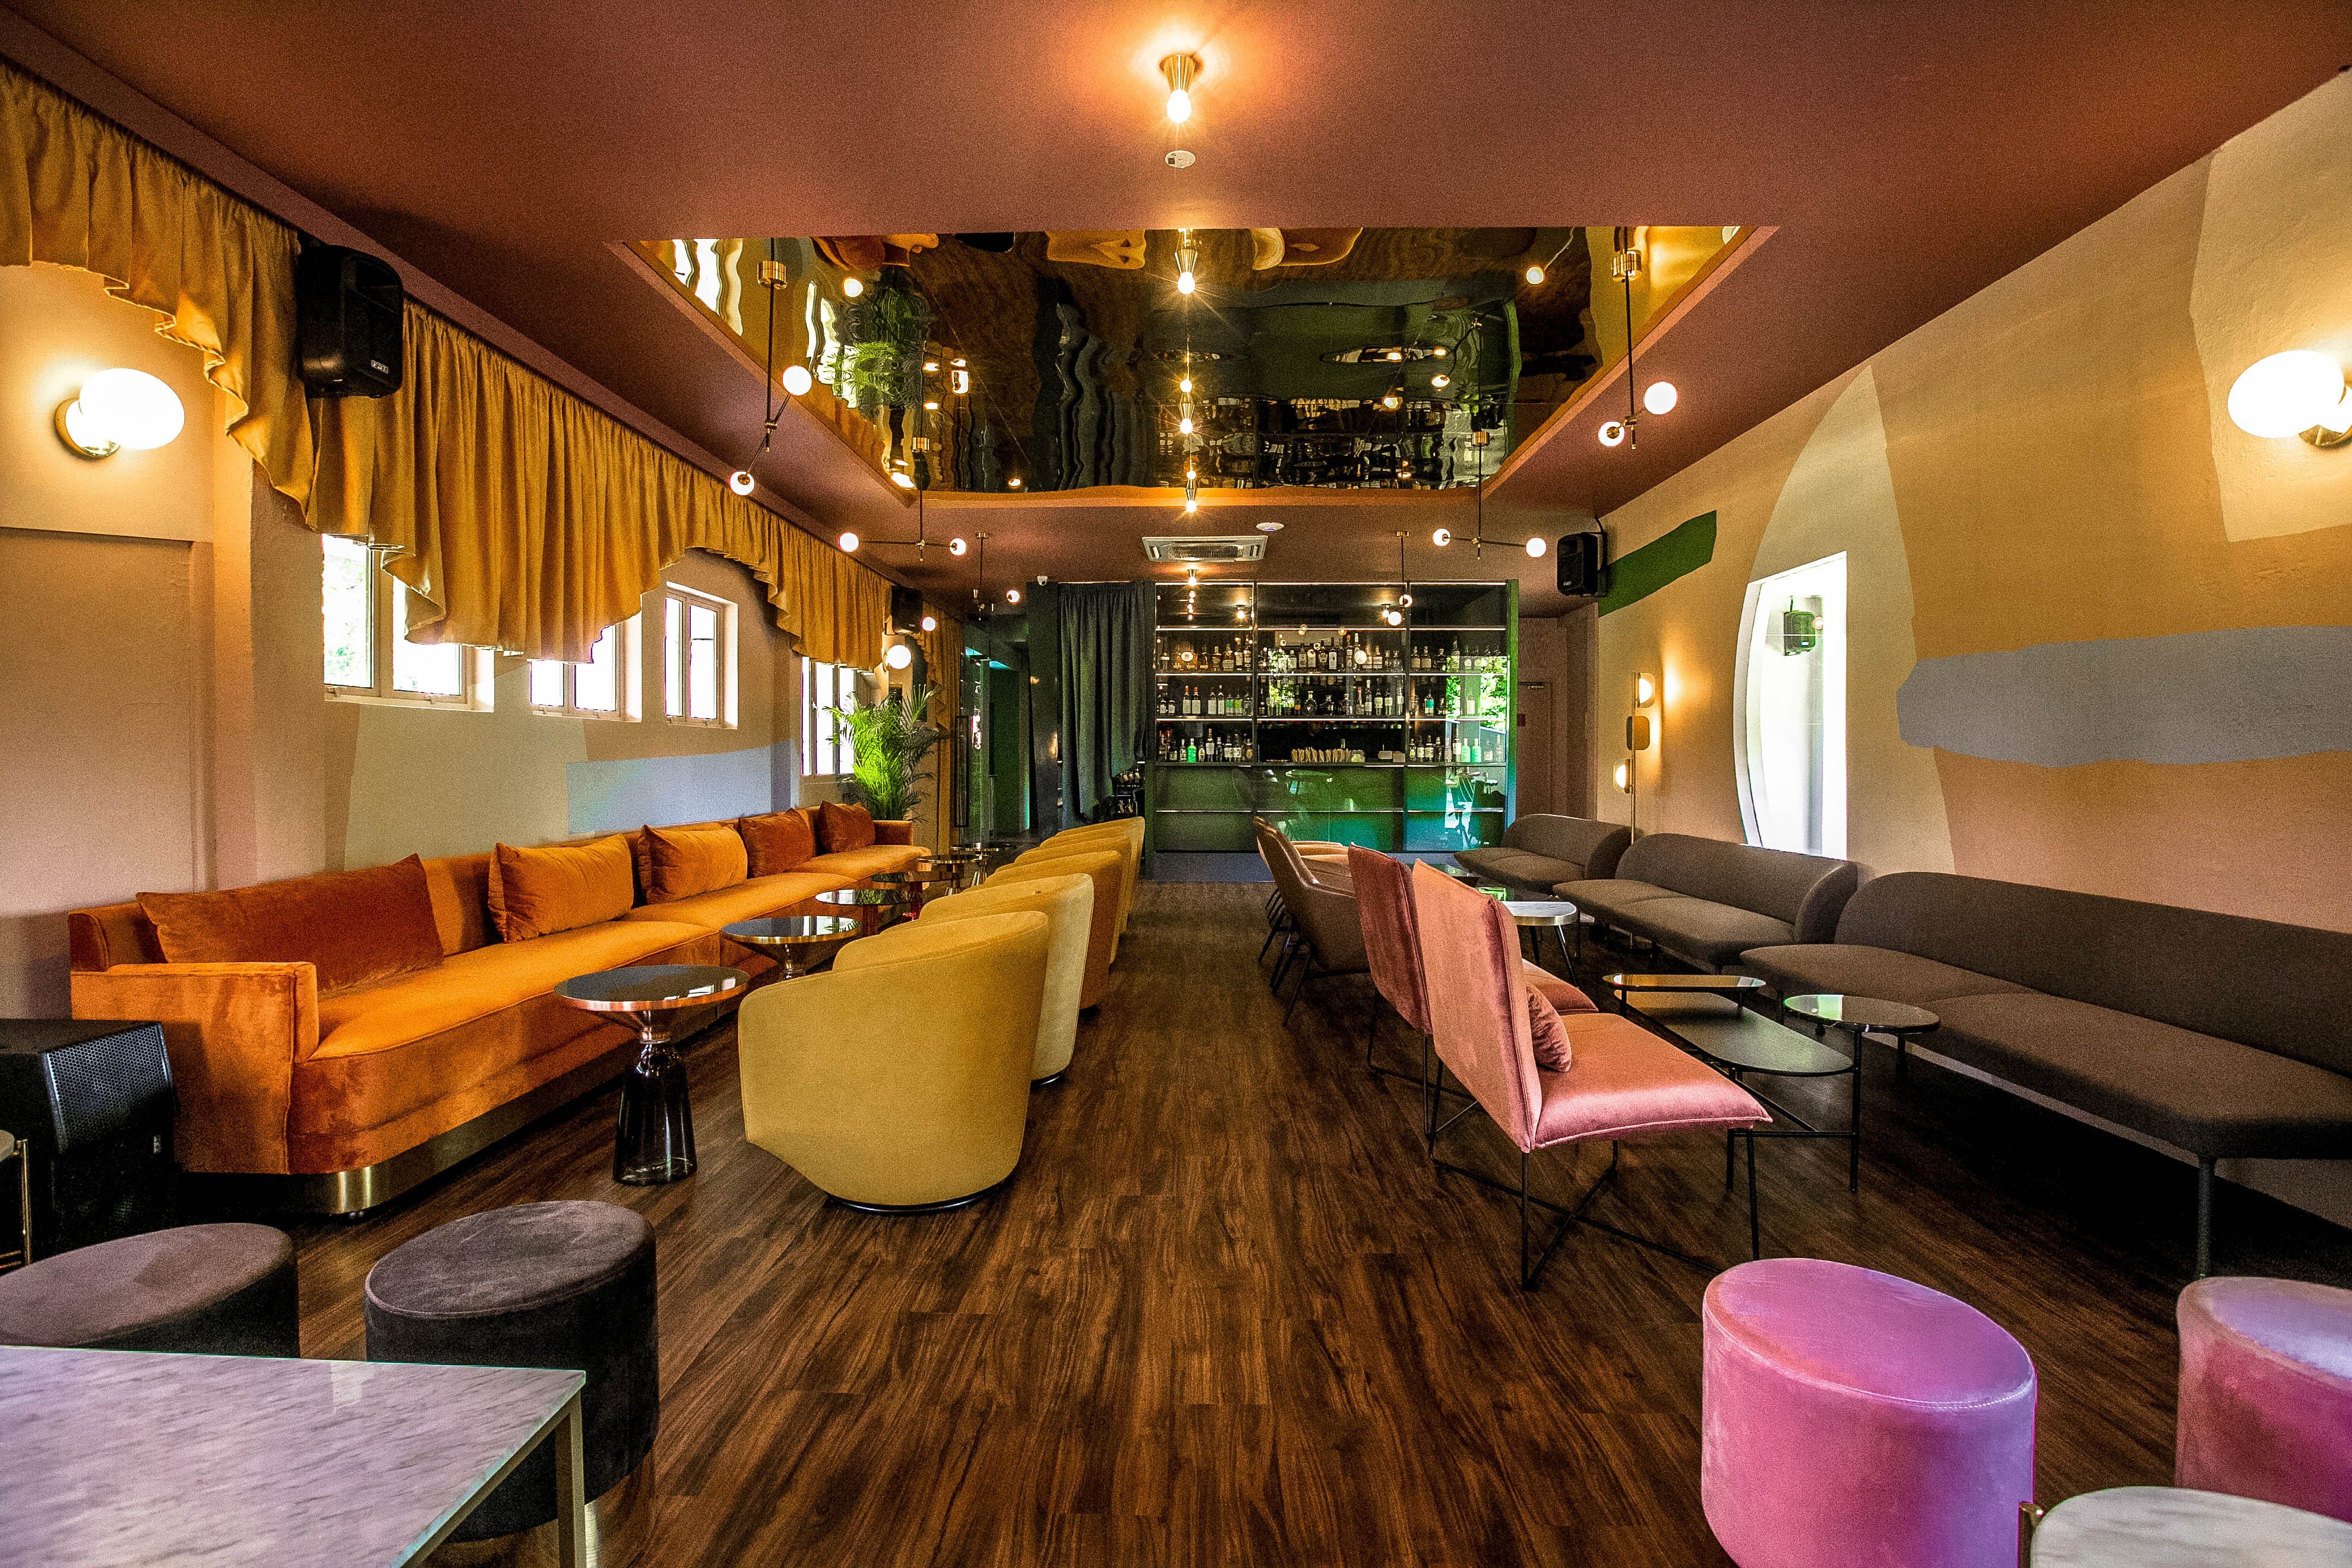 Bar review: Room For More, an elegant whisky lounge hidden in Dempsey Hill